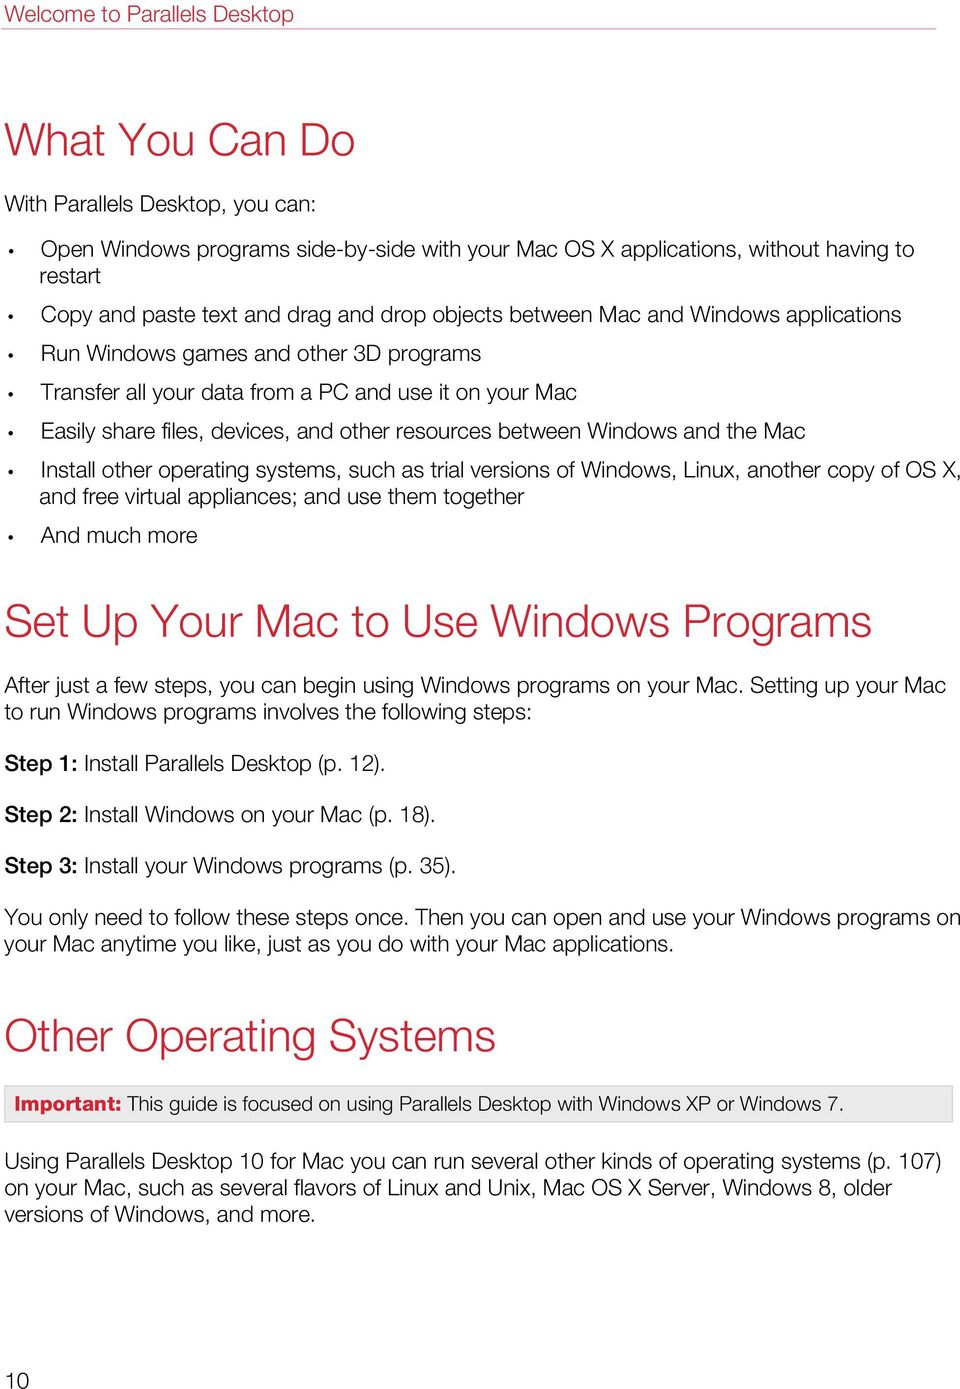 resources between Windows and the Mac Install other operating systems, such as trial versions of Windows, Linux, another copy of OS X, and free virtual appliances; and use them together And much more